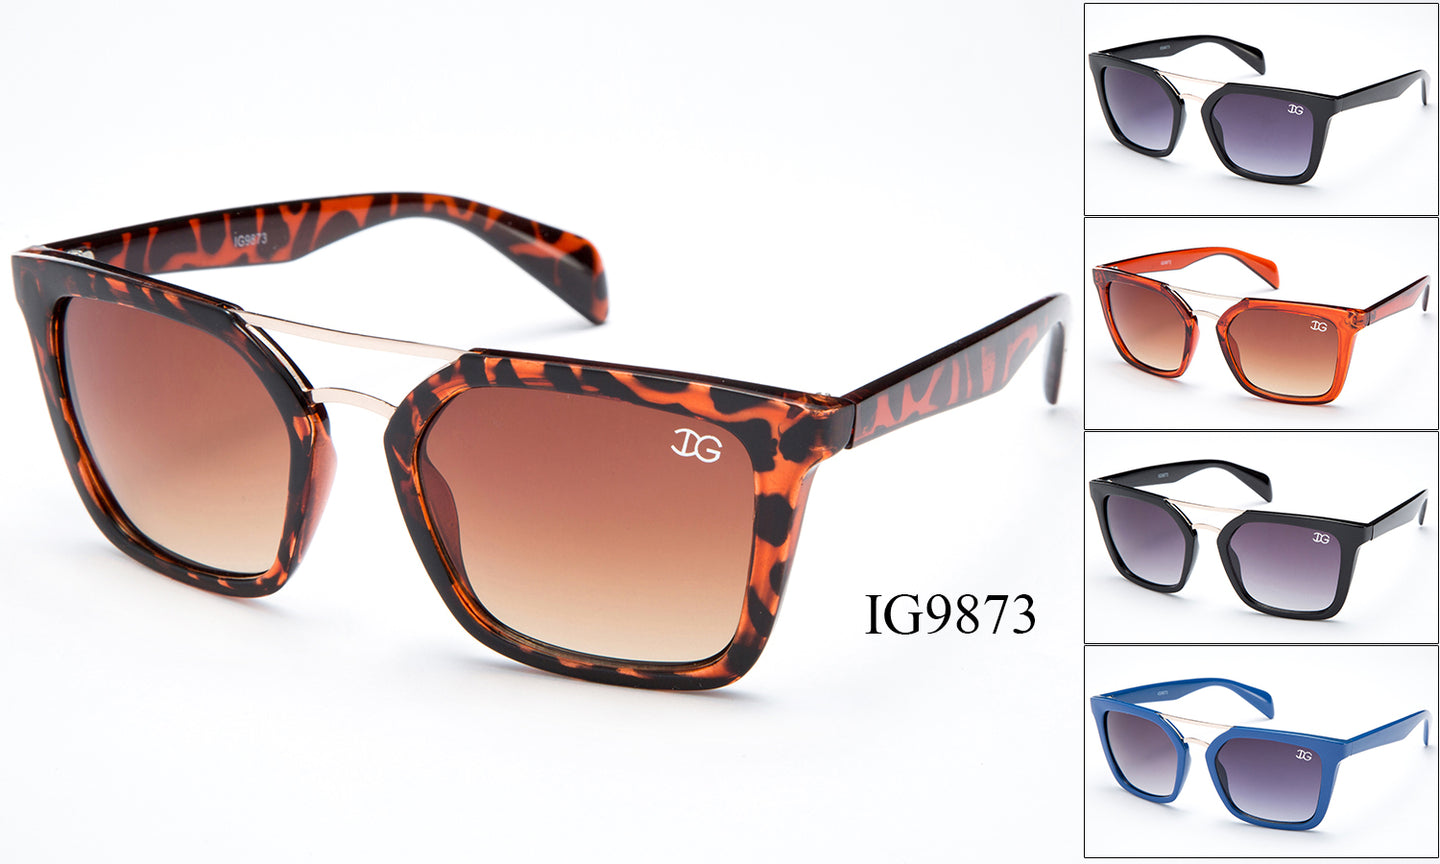 Womens Wayfarer Wholesale Fashion Brow Bar Sunglasses 1 Dozen IG9873 - BuyWholesaleSunglasses.com